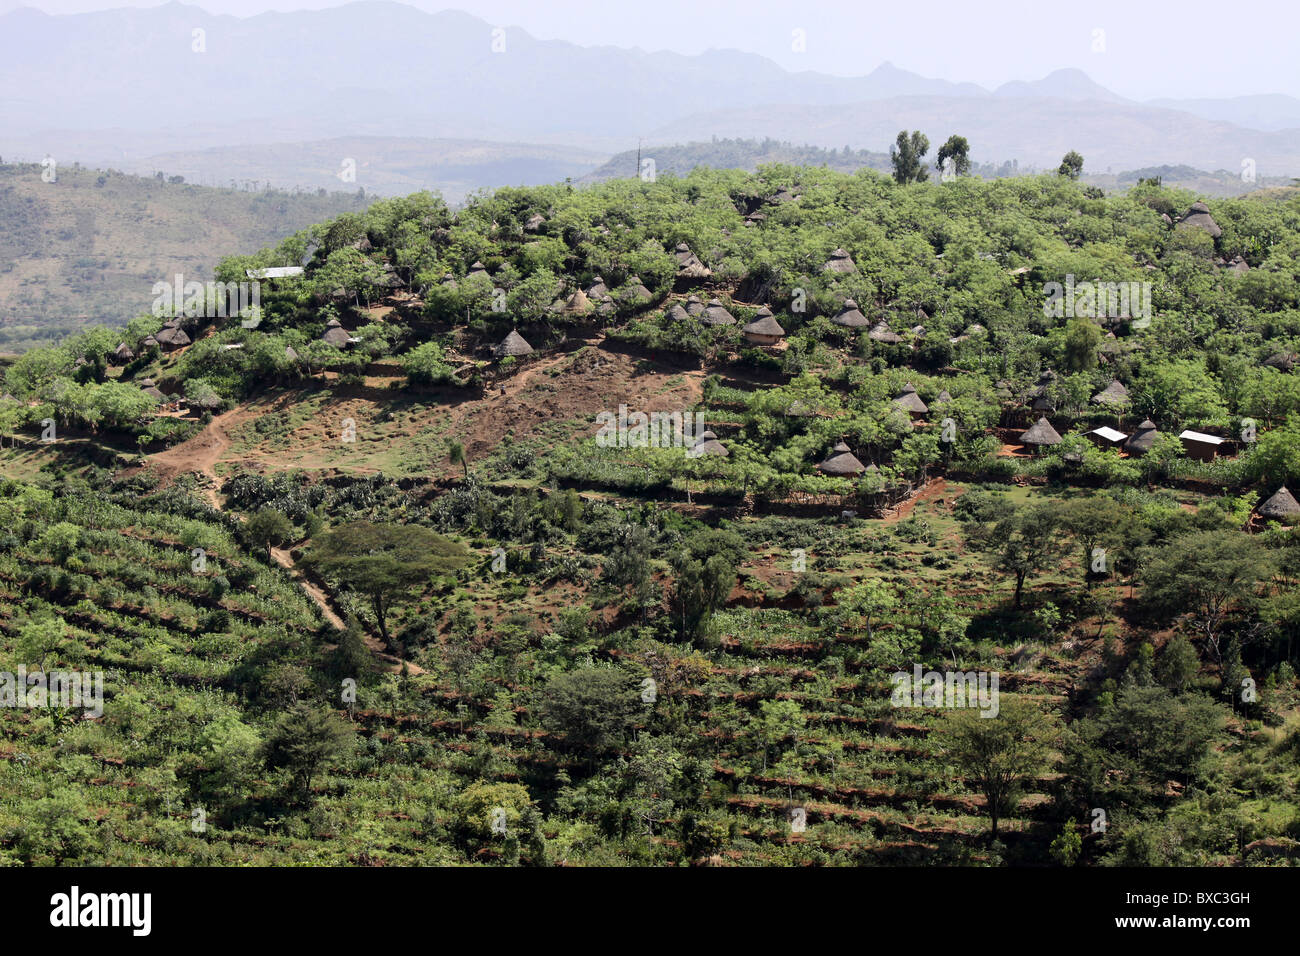 Village Settlements And Terraced Fields Of The Konso Tribe, Ethiopia - Stock Image